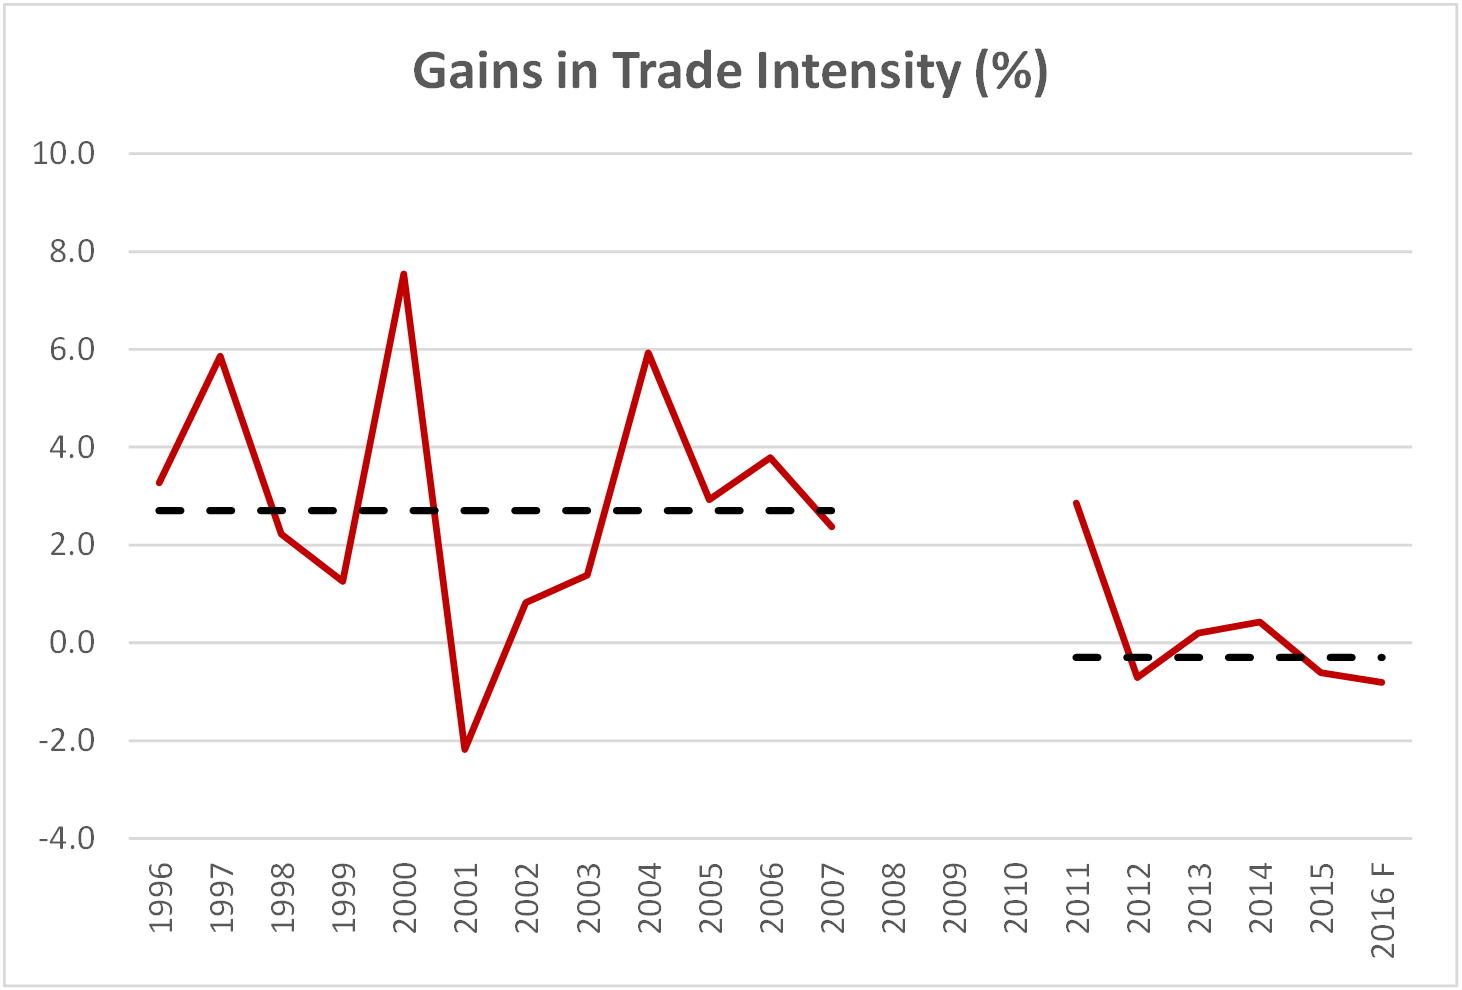 Chart 1.6 - Gains in Trade Intensity